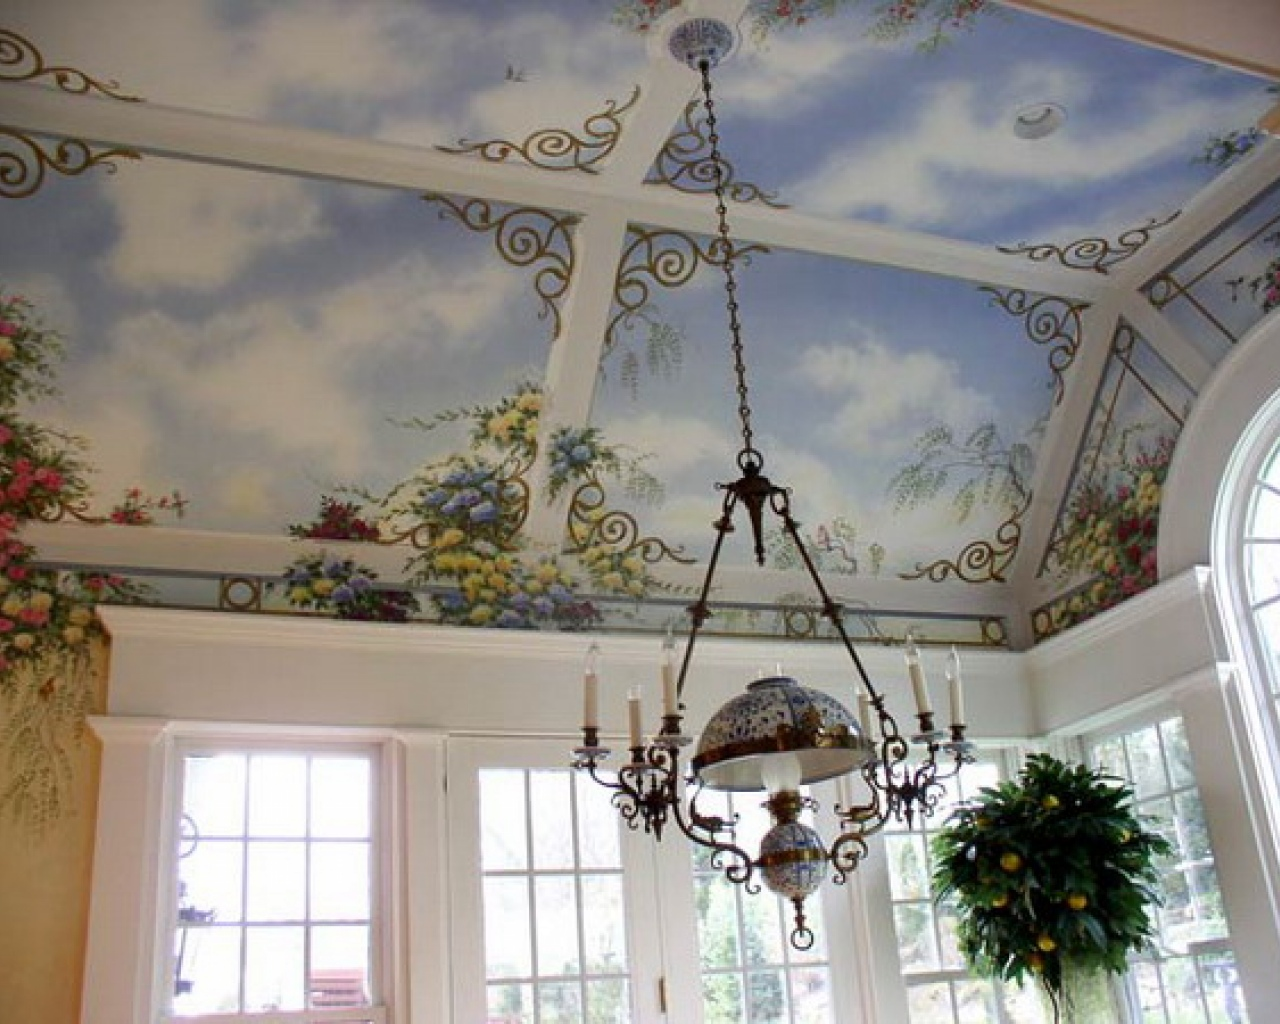 home-interior-decorating-ideas-featuring-classic-art-ceiling-mural-bathroom-ideas-art-murals-ceiling.com-mural-wallpaper-ceilings-ideas-36581